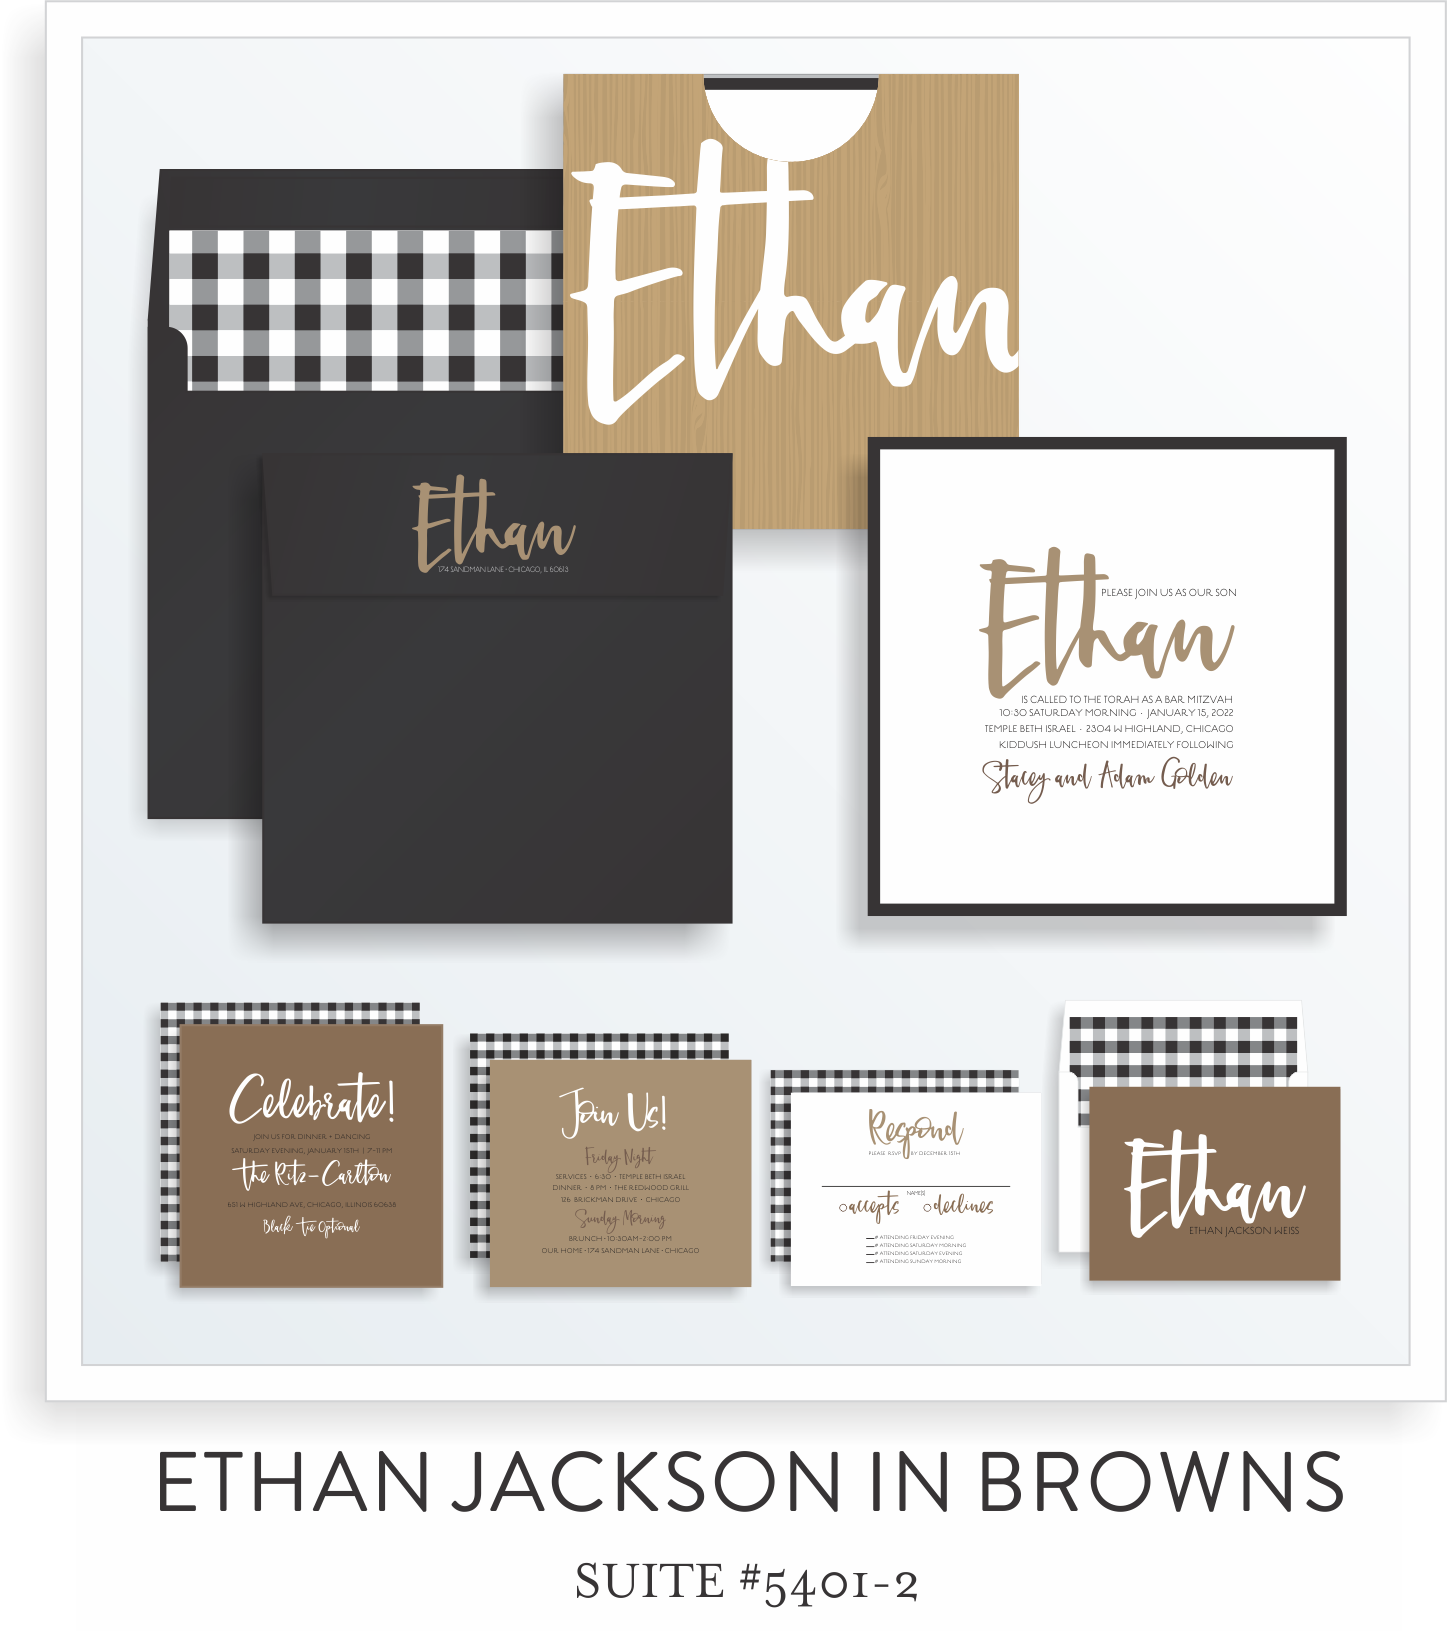 5401-2 ETHAN JACKSON IN BROWNS SUITE THUMB.png